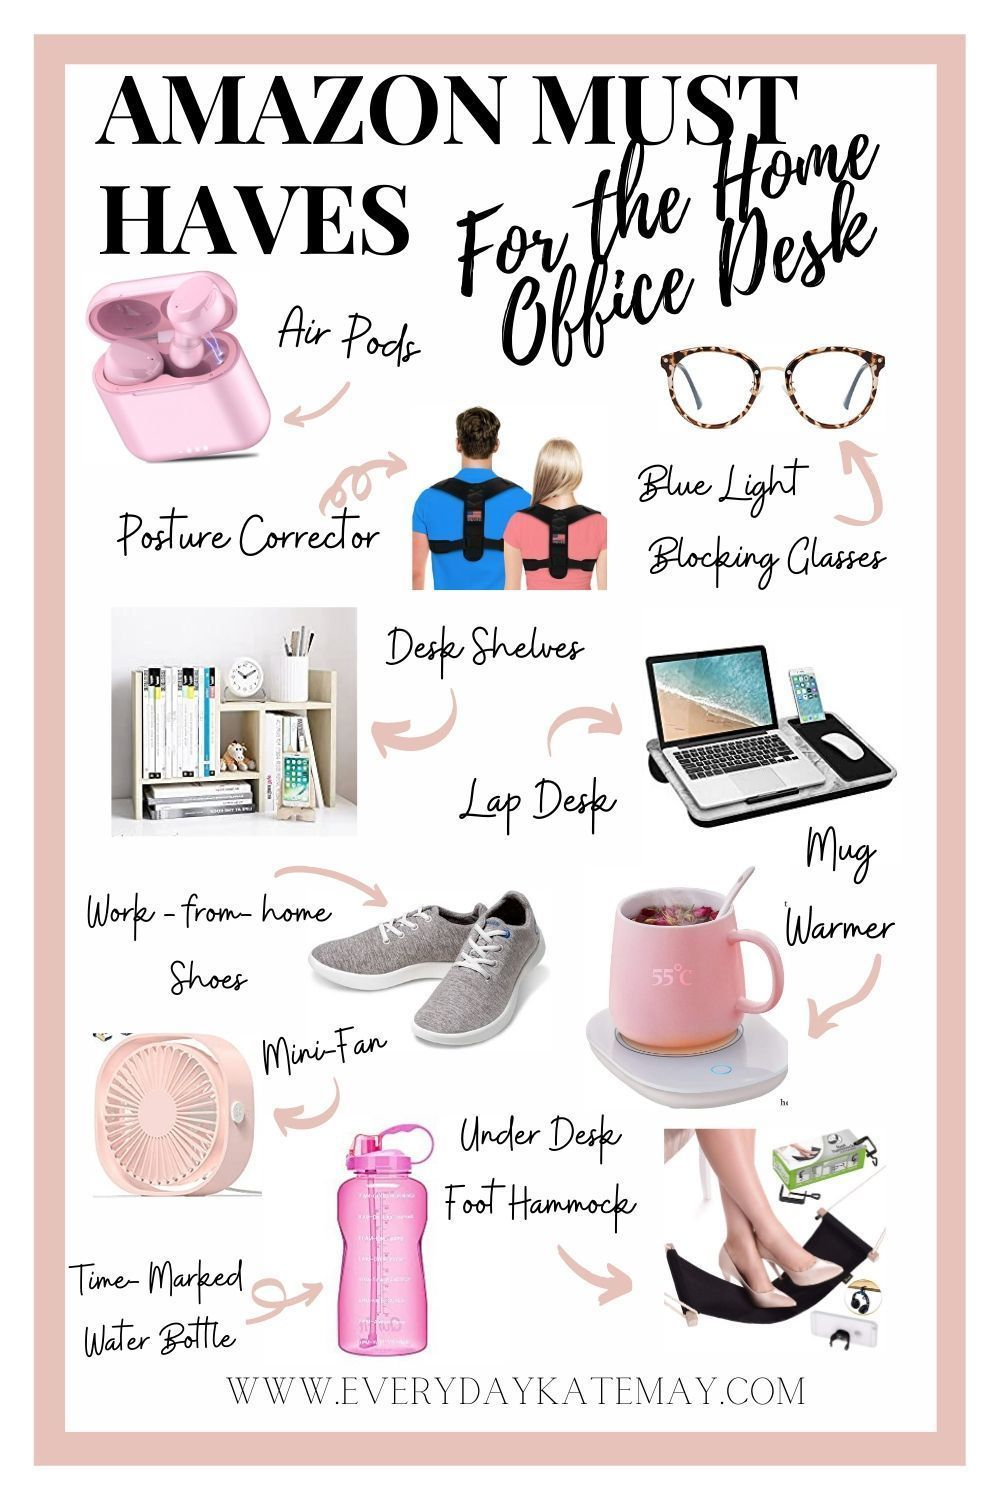 Looking for the Amazon musthaves while working from home